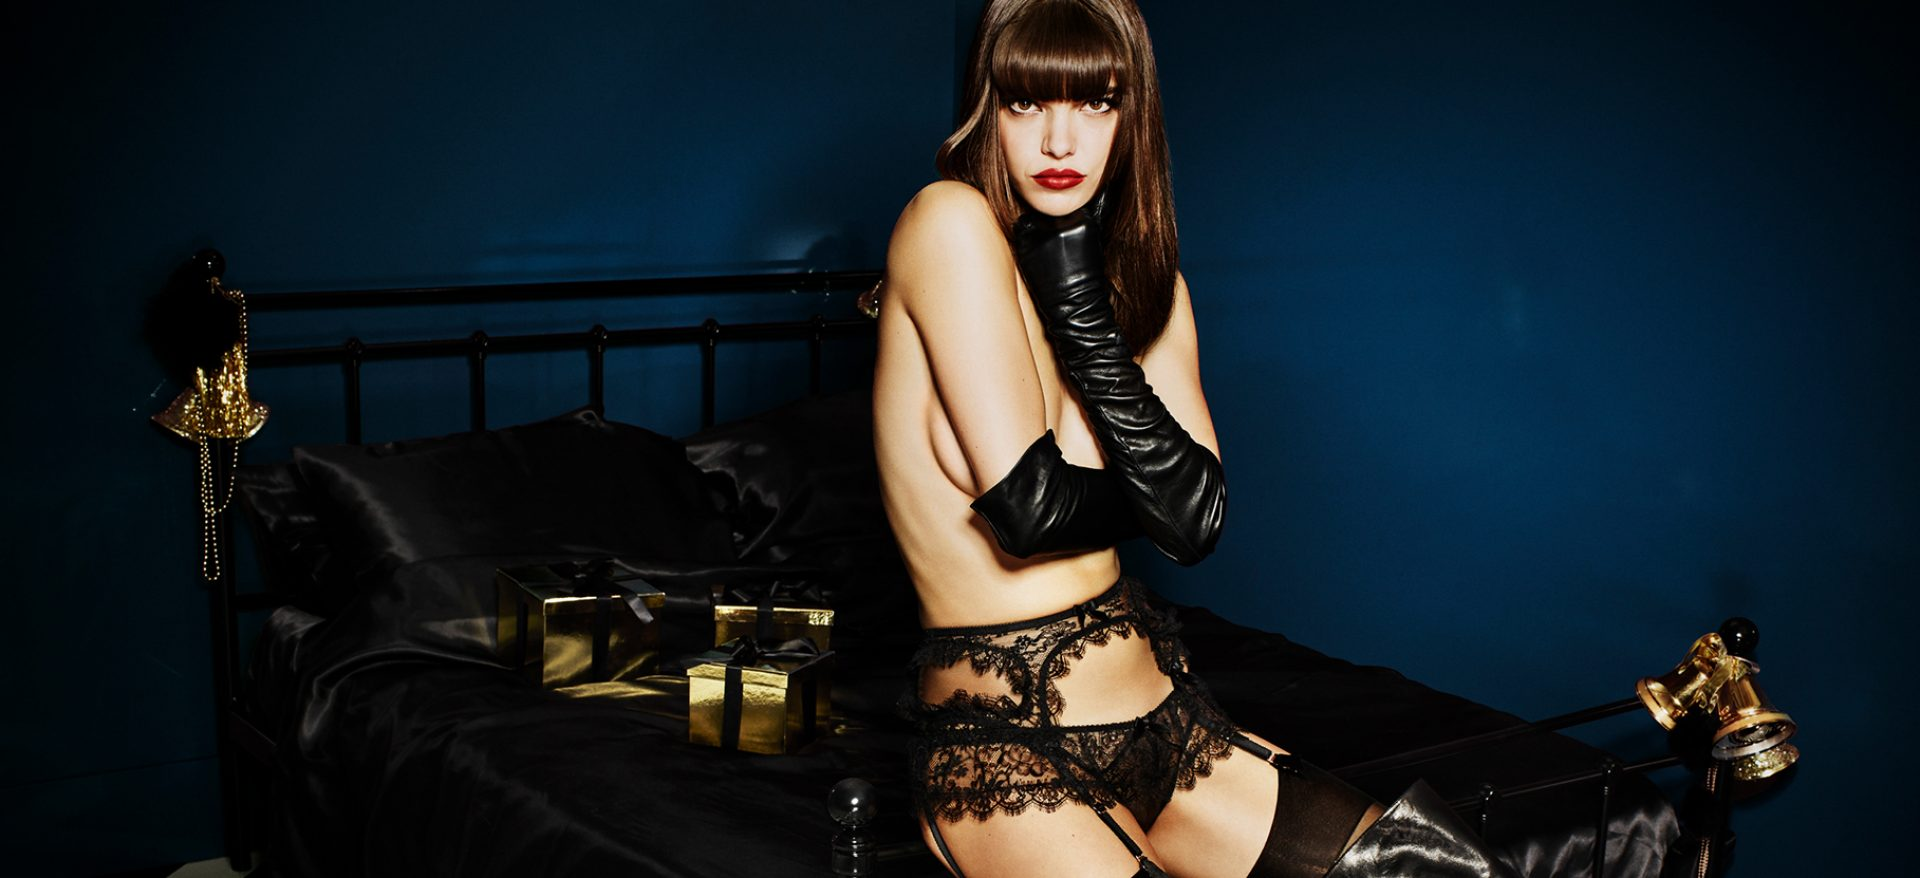 b2e529b4a8 Agent Provocateur Naughty or Nice  WhatsApp Campaign - Cult